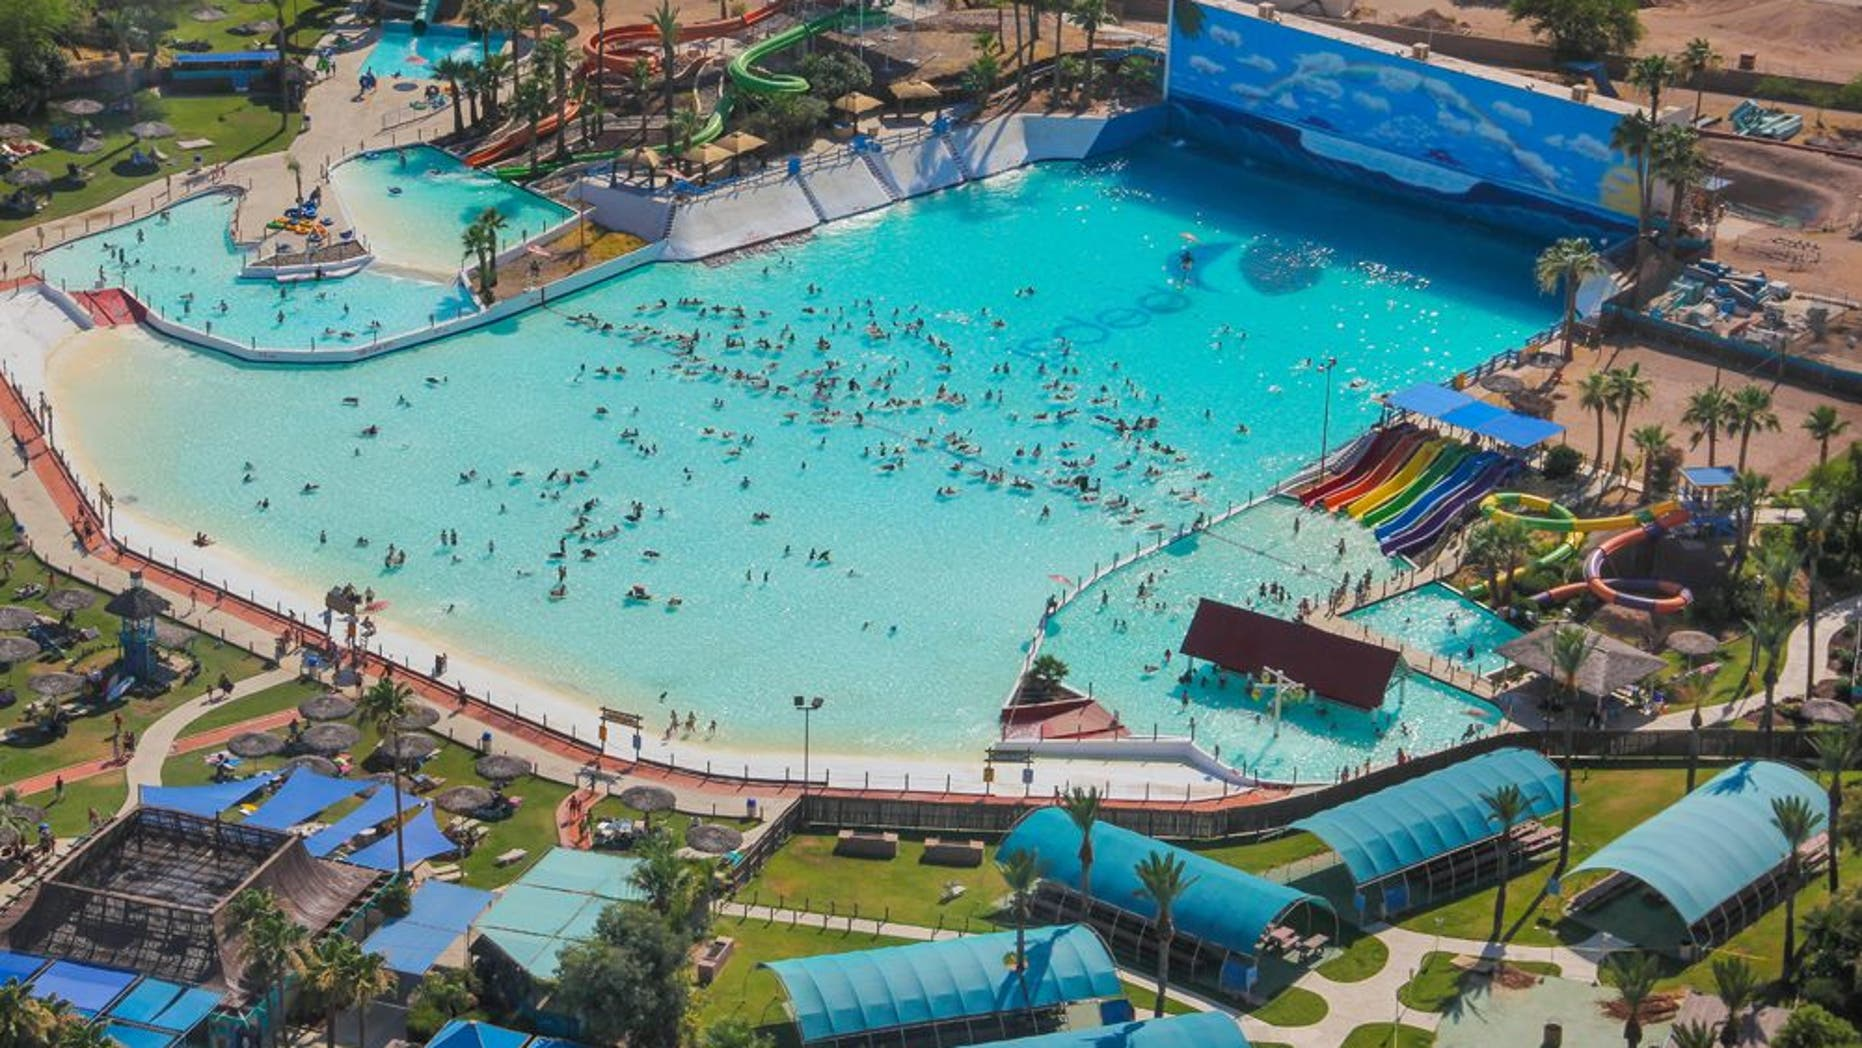 Firefighters were called to suppress a fire at an Arizona water park.